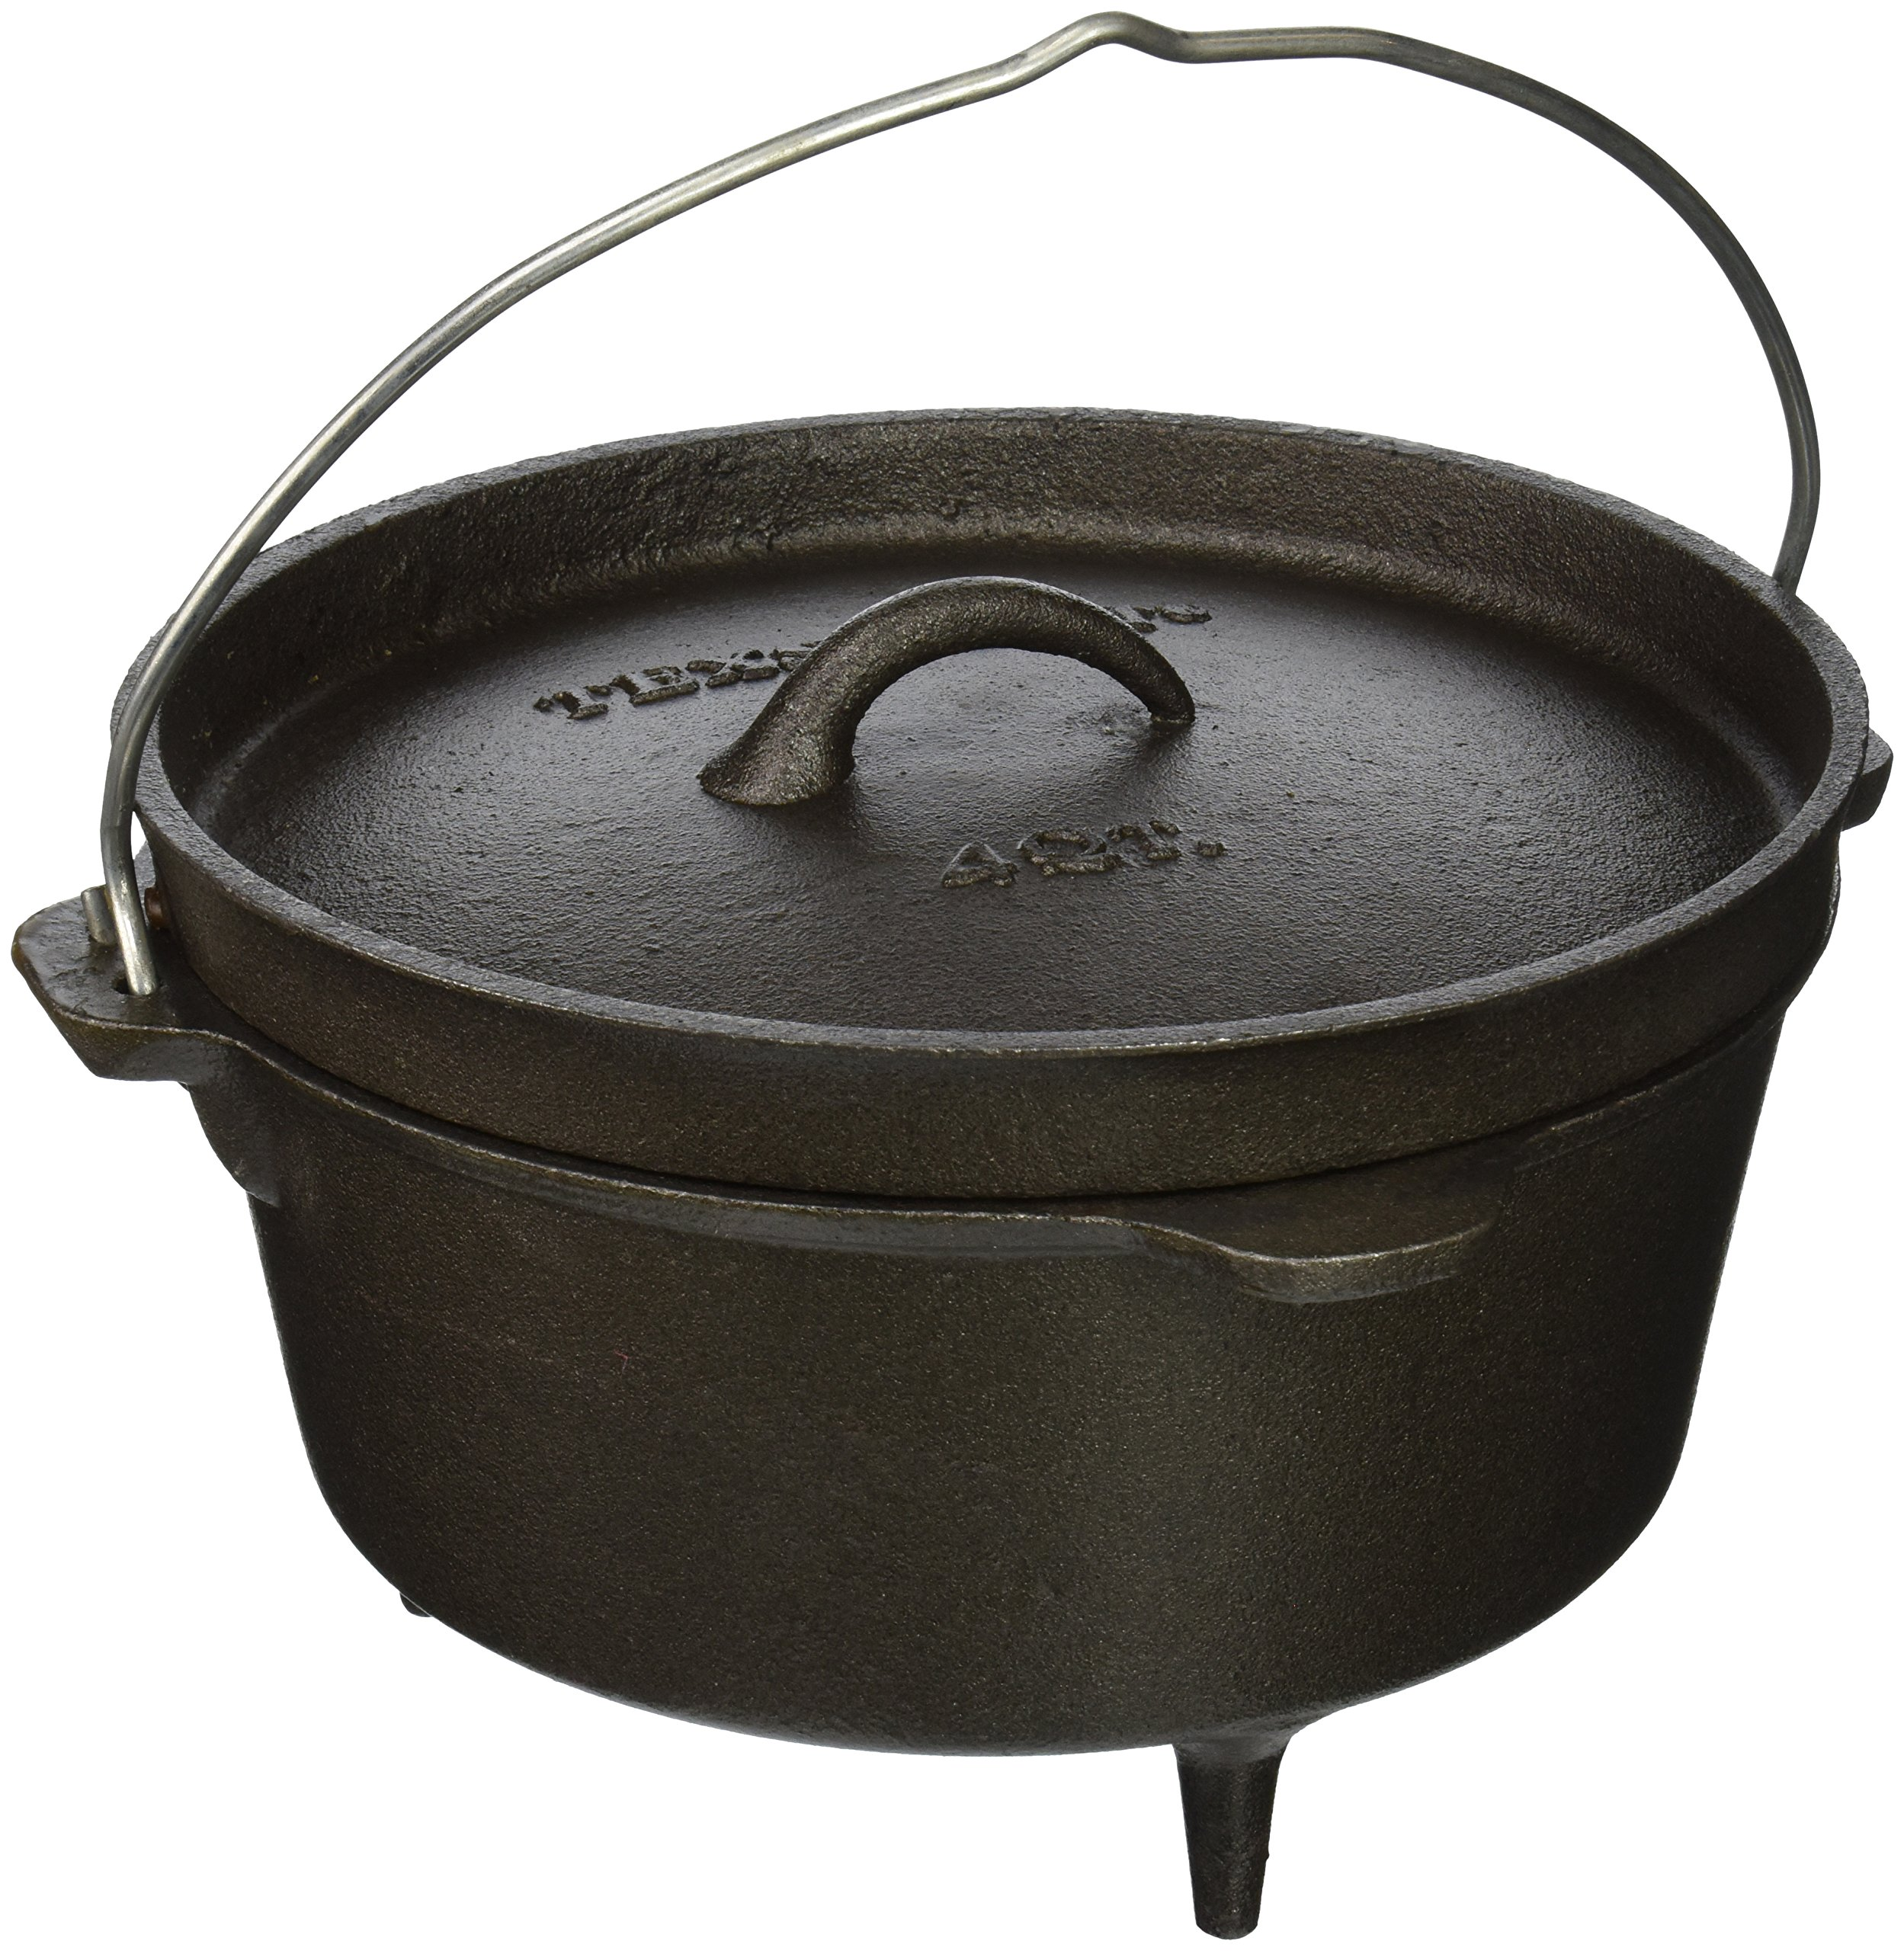 Texsport Cast Iron Dutch Oven with Legs, Lid, Dual Handles and Easy Lift Wire Handle. by Texsport